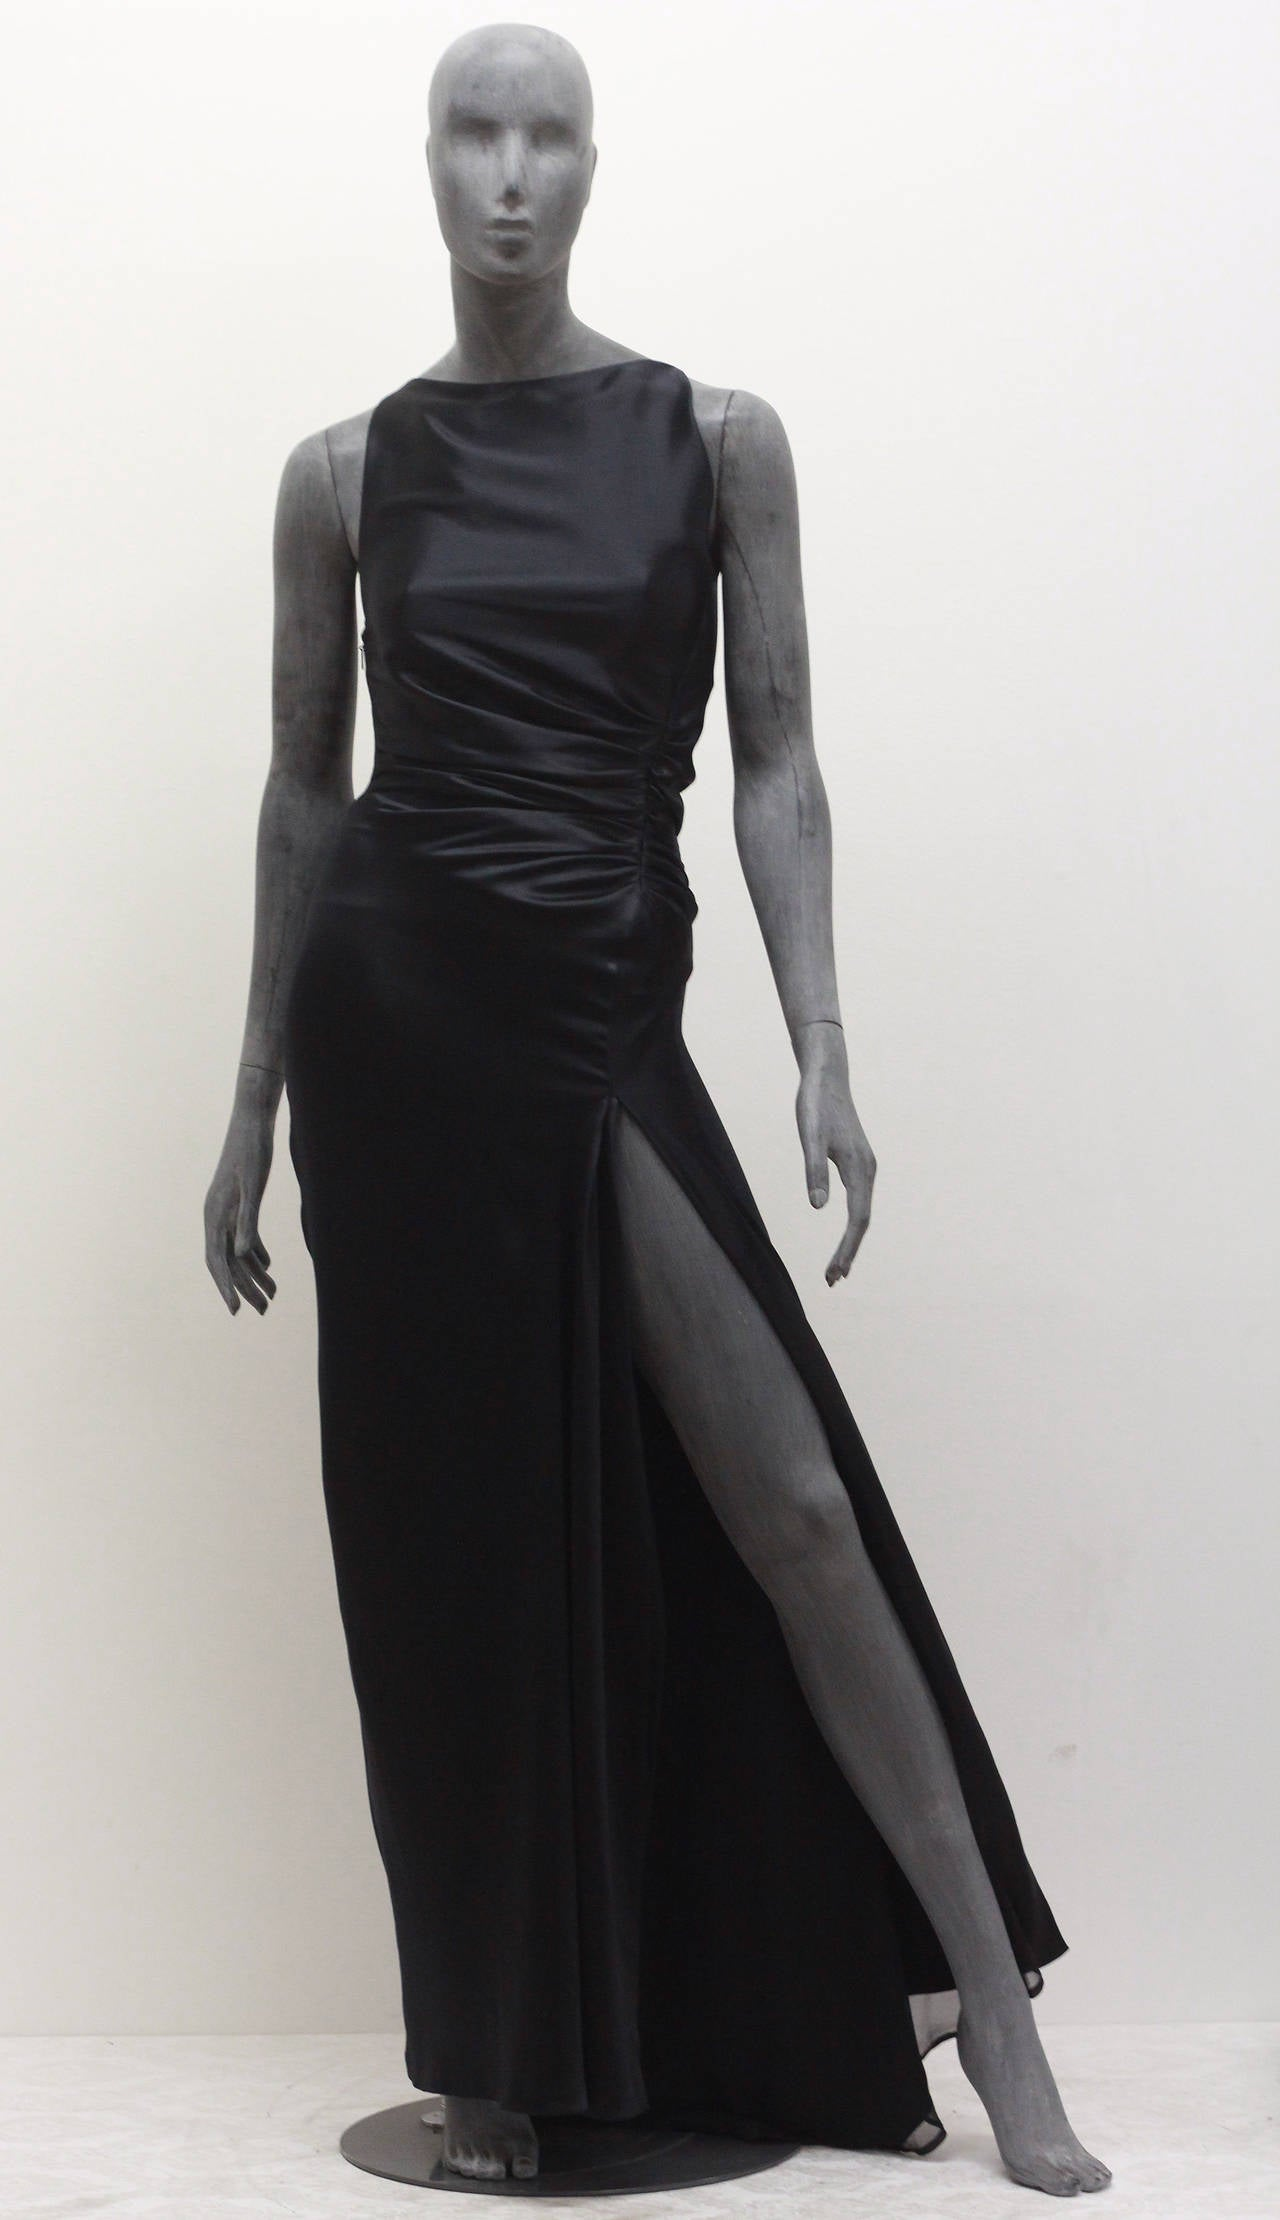 This is a black silk evening dress by Tom Ford for Gucci, the dress features a high leg slit, silk chiffon under layer and pleated bodice. 